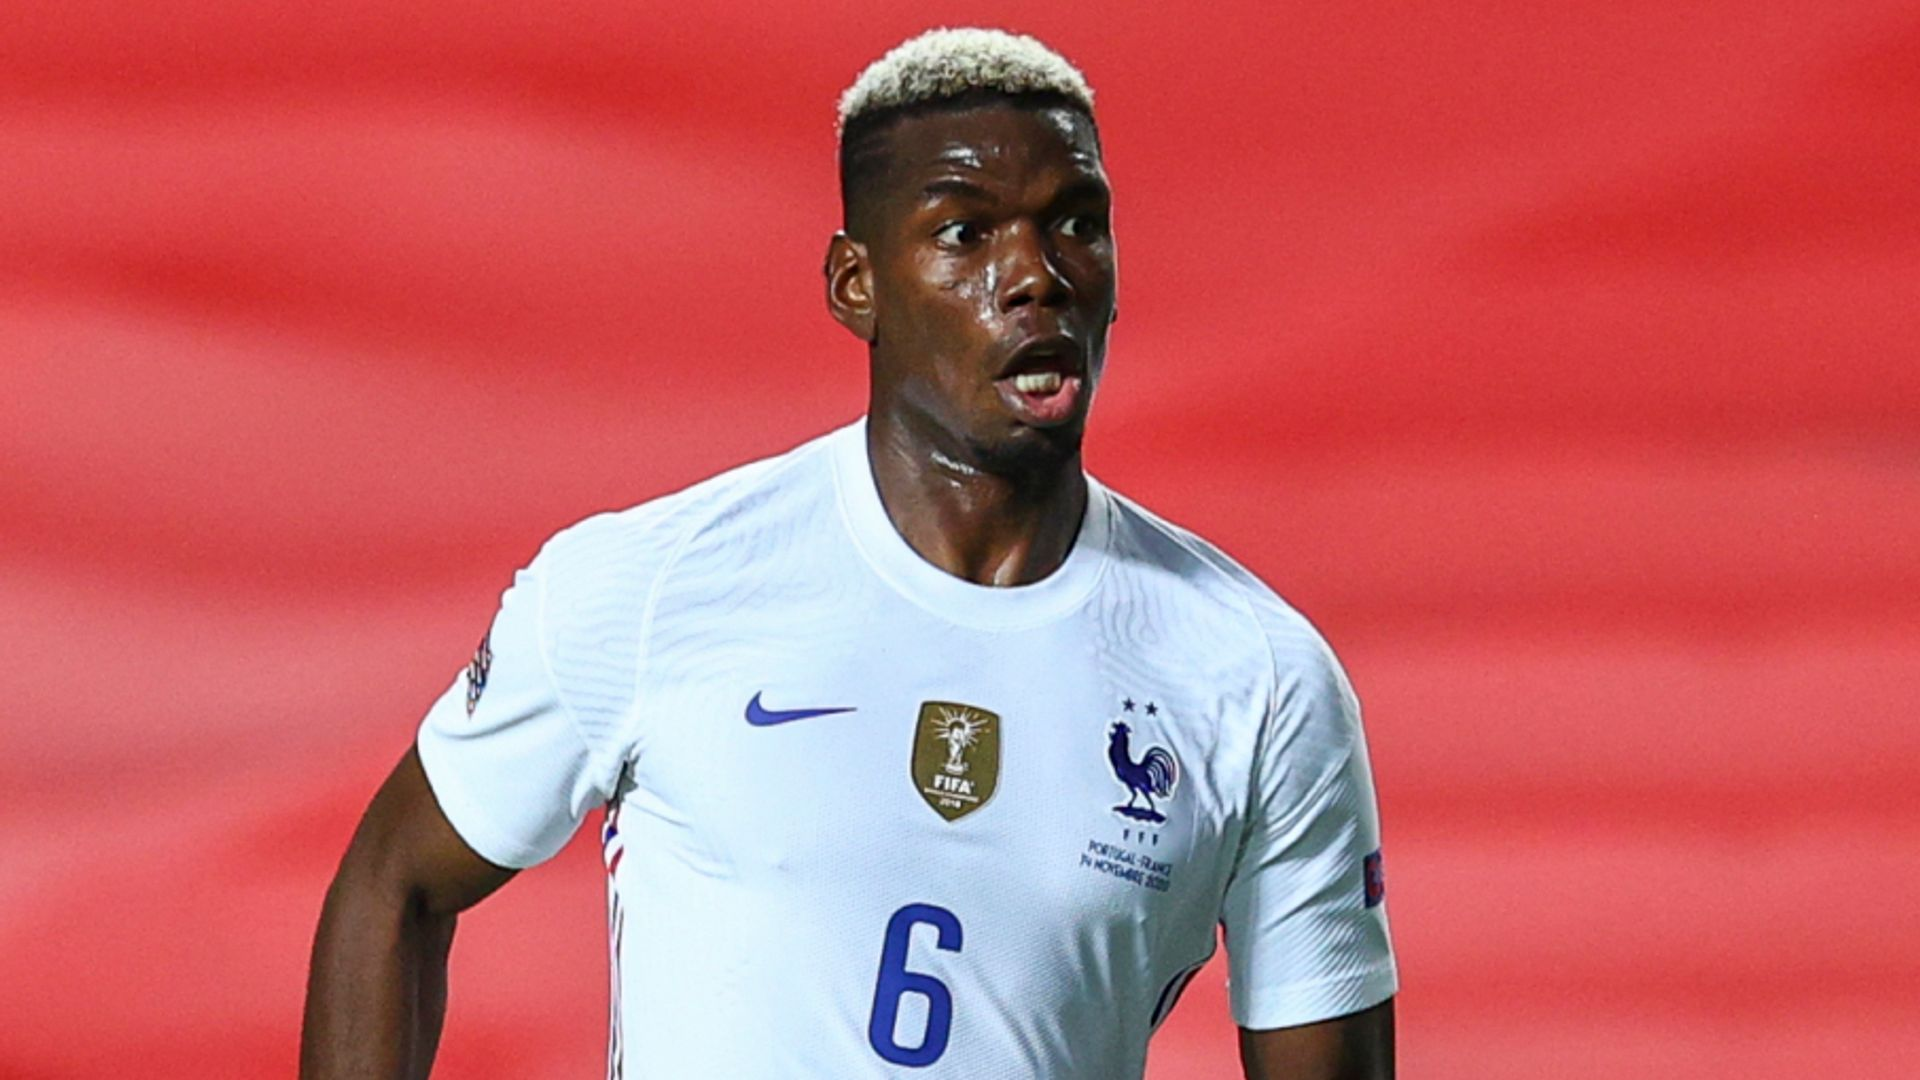 Pogba: Breath of fresh air playing with France